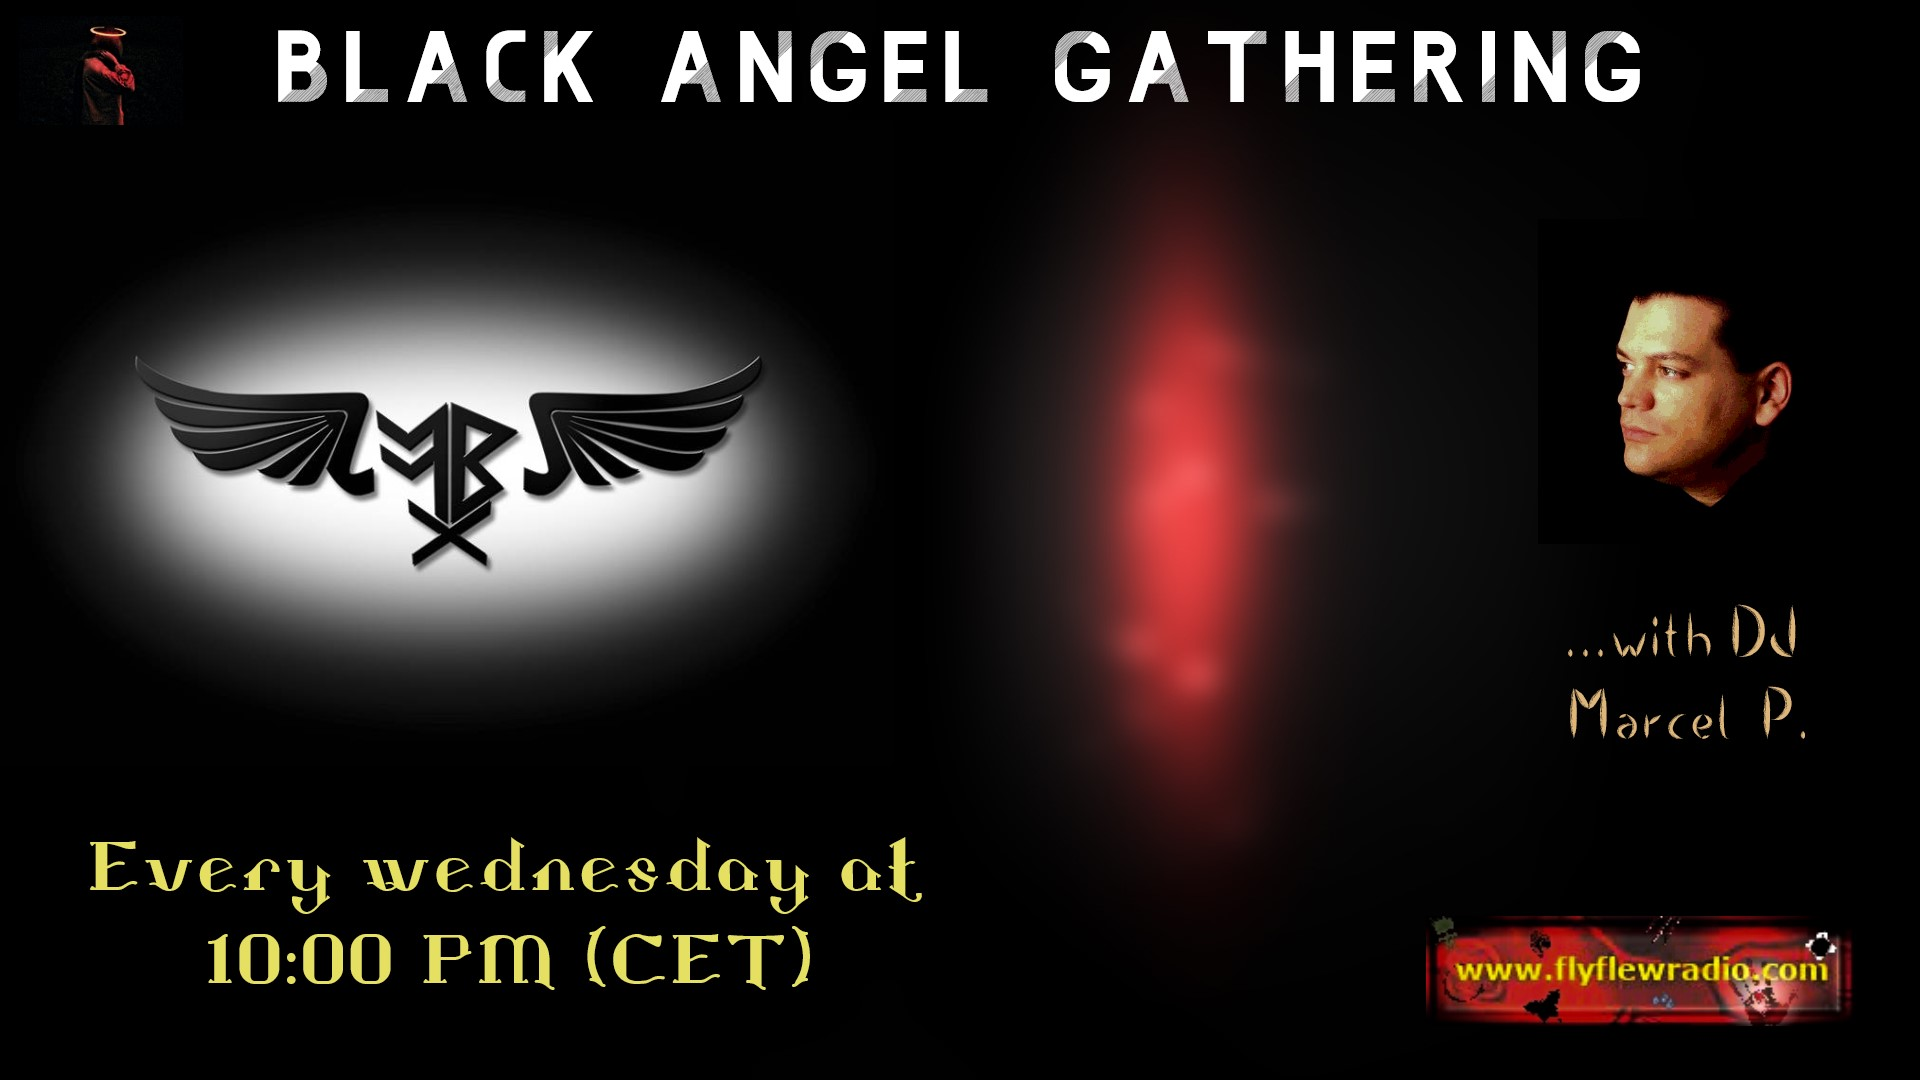 Black Angel Gathering